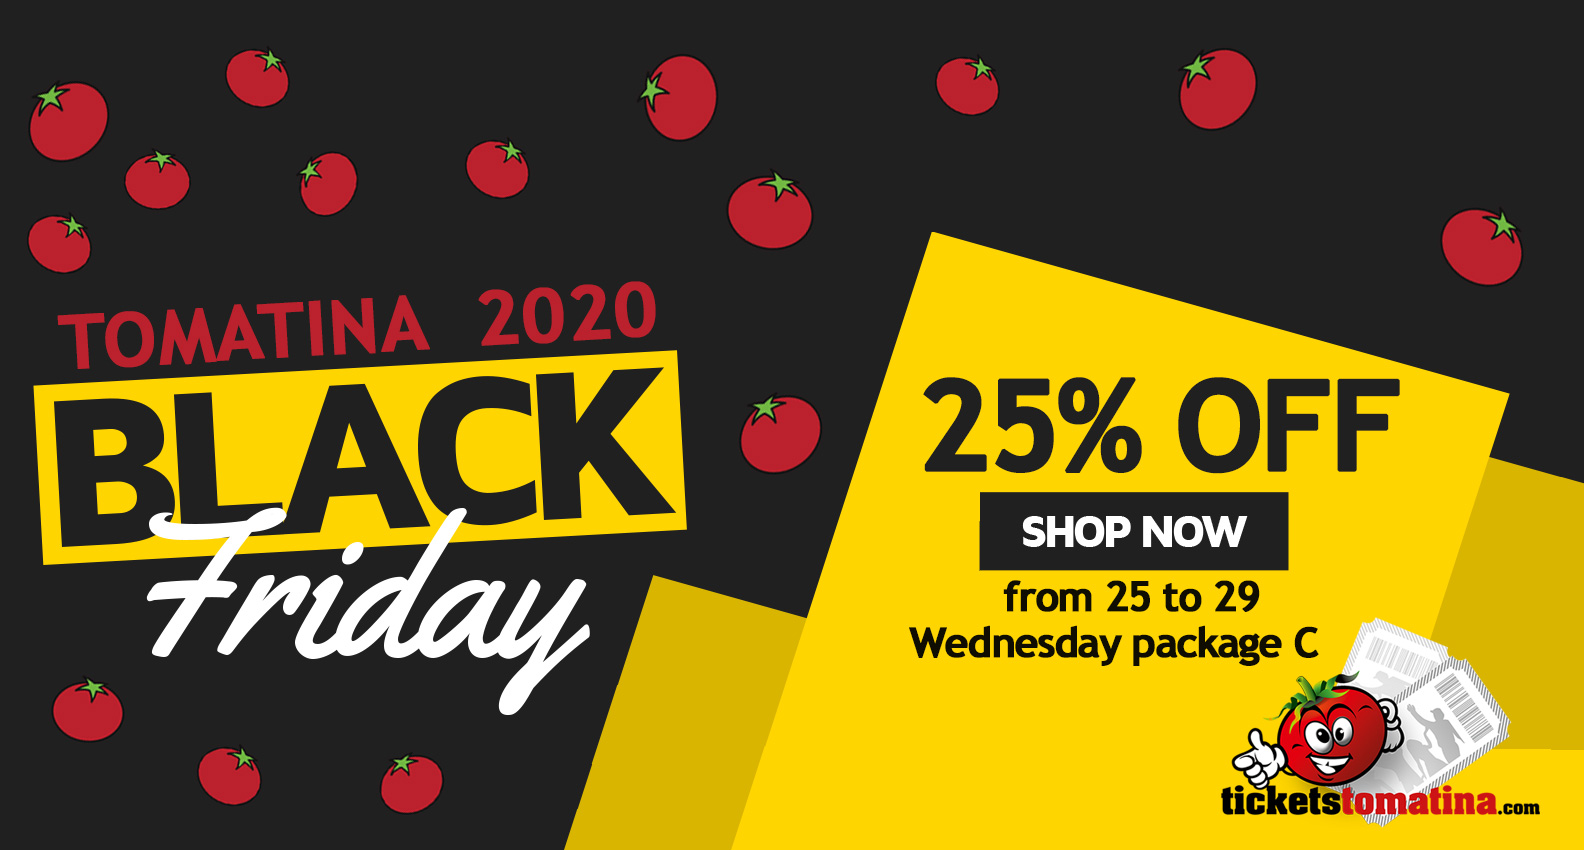 ticket-tomatina-2020-black-friday-accesories.jpg